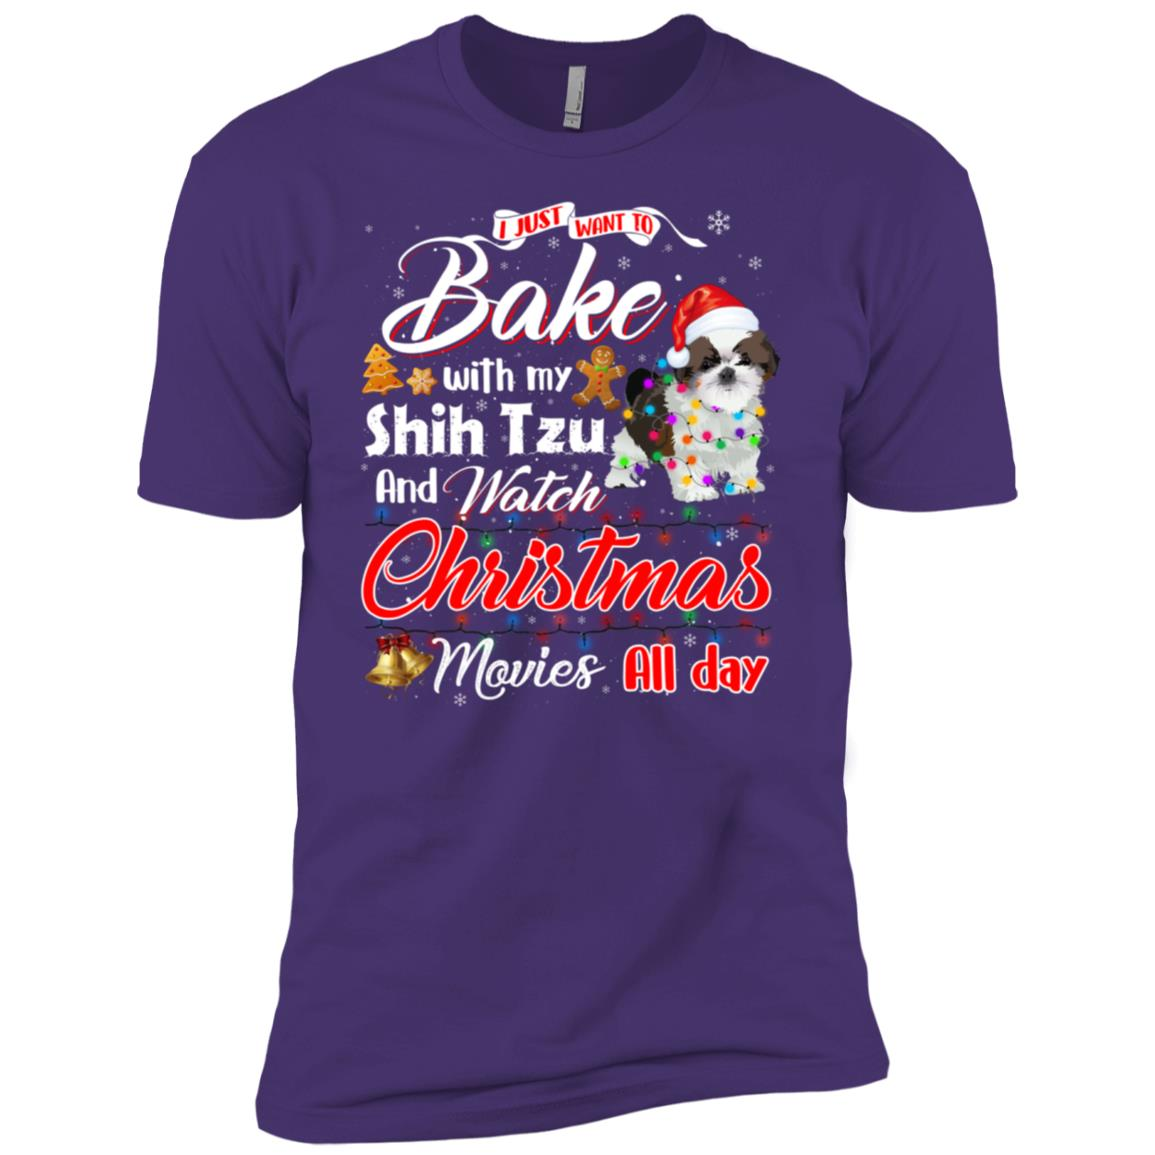 Bake Stuff with Shih Tzu Watch Christmas Movies Men Short Sleeve T-Shirt